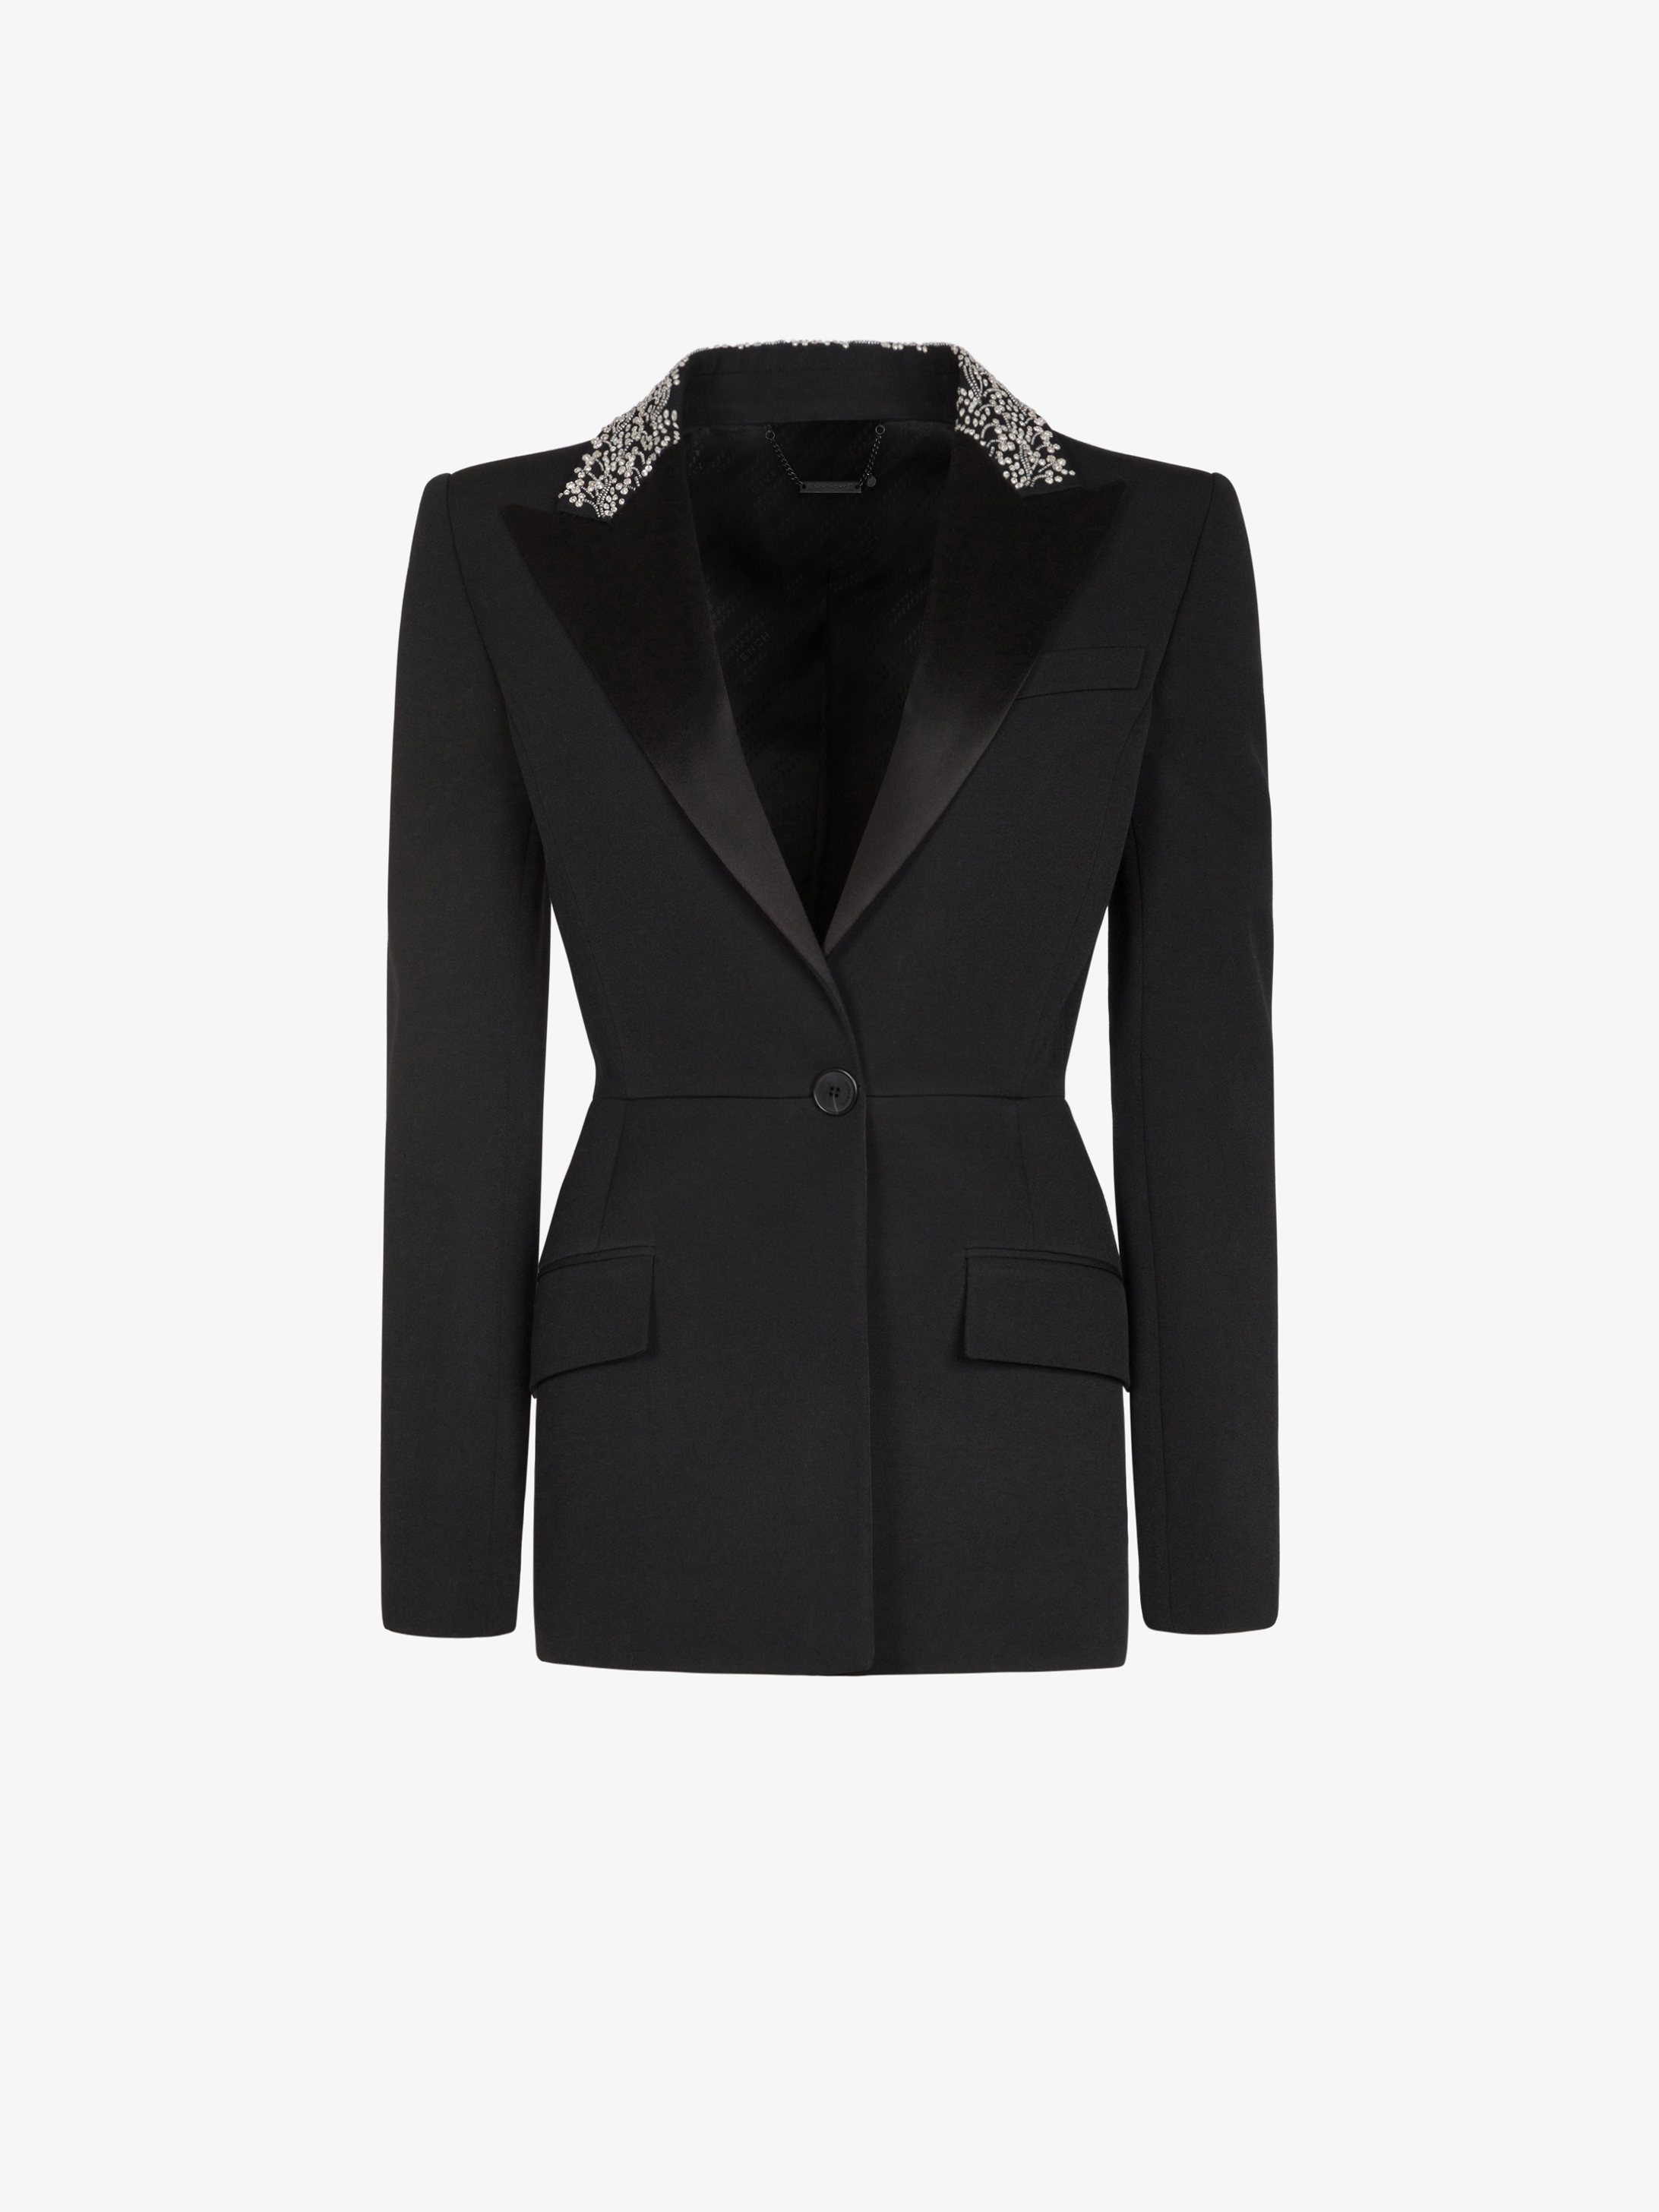 Peplum jacket in grain de poudre with embroidered collar